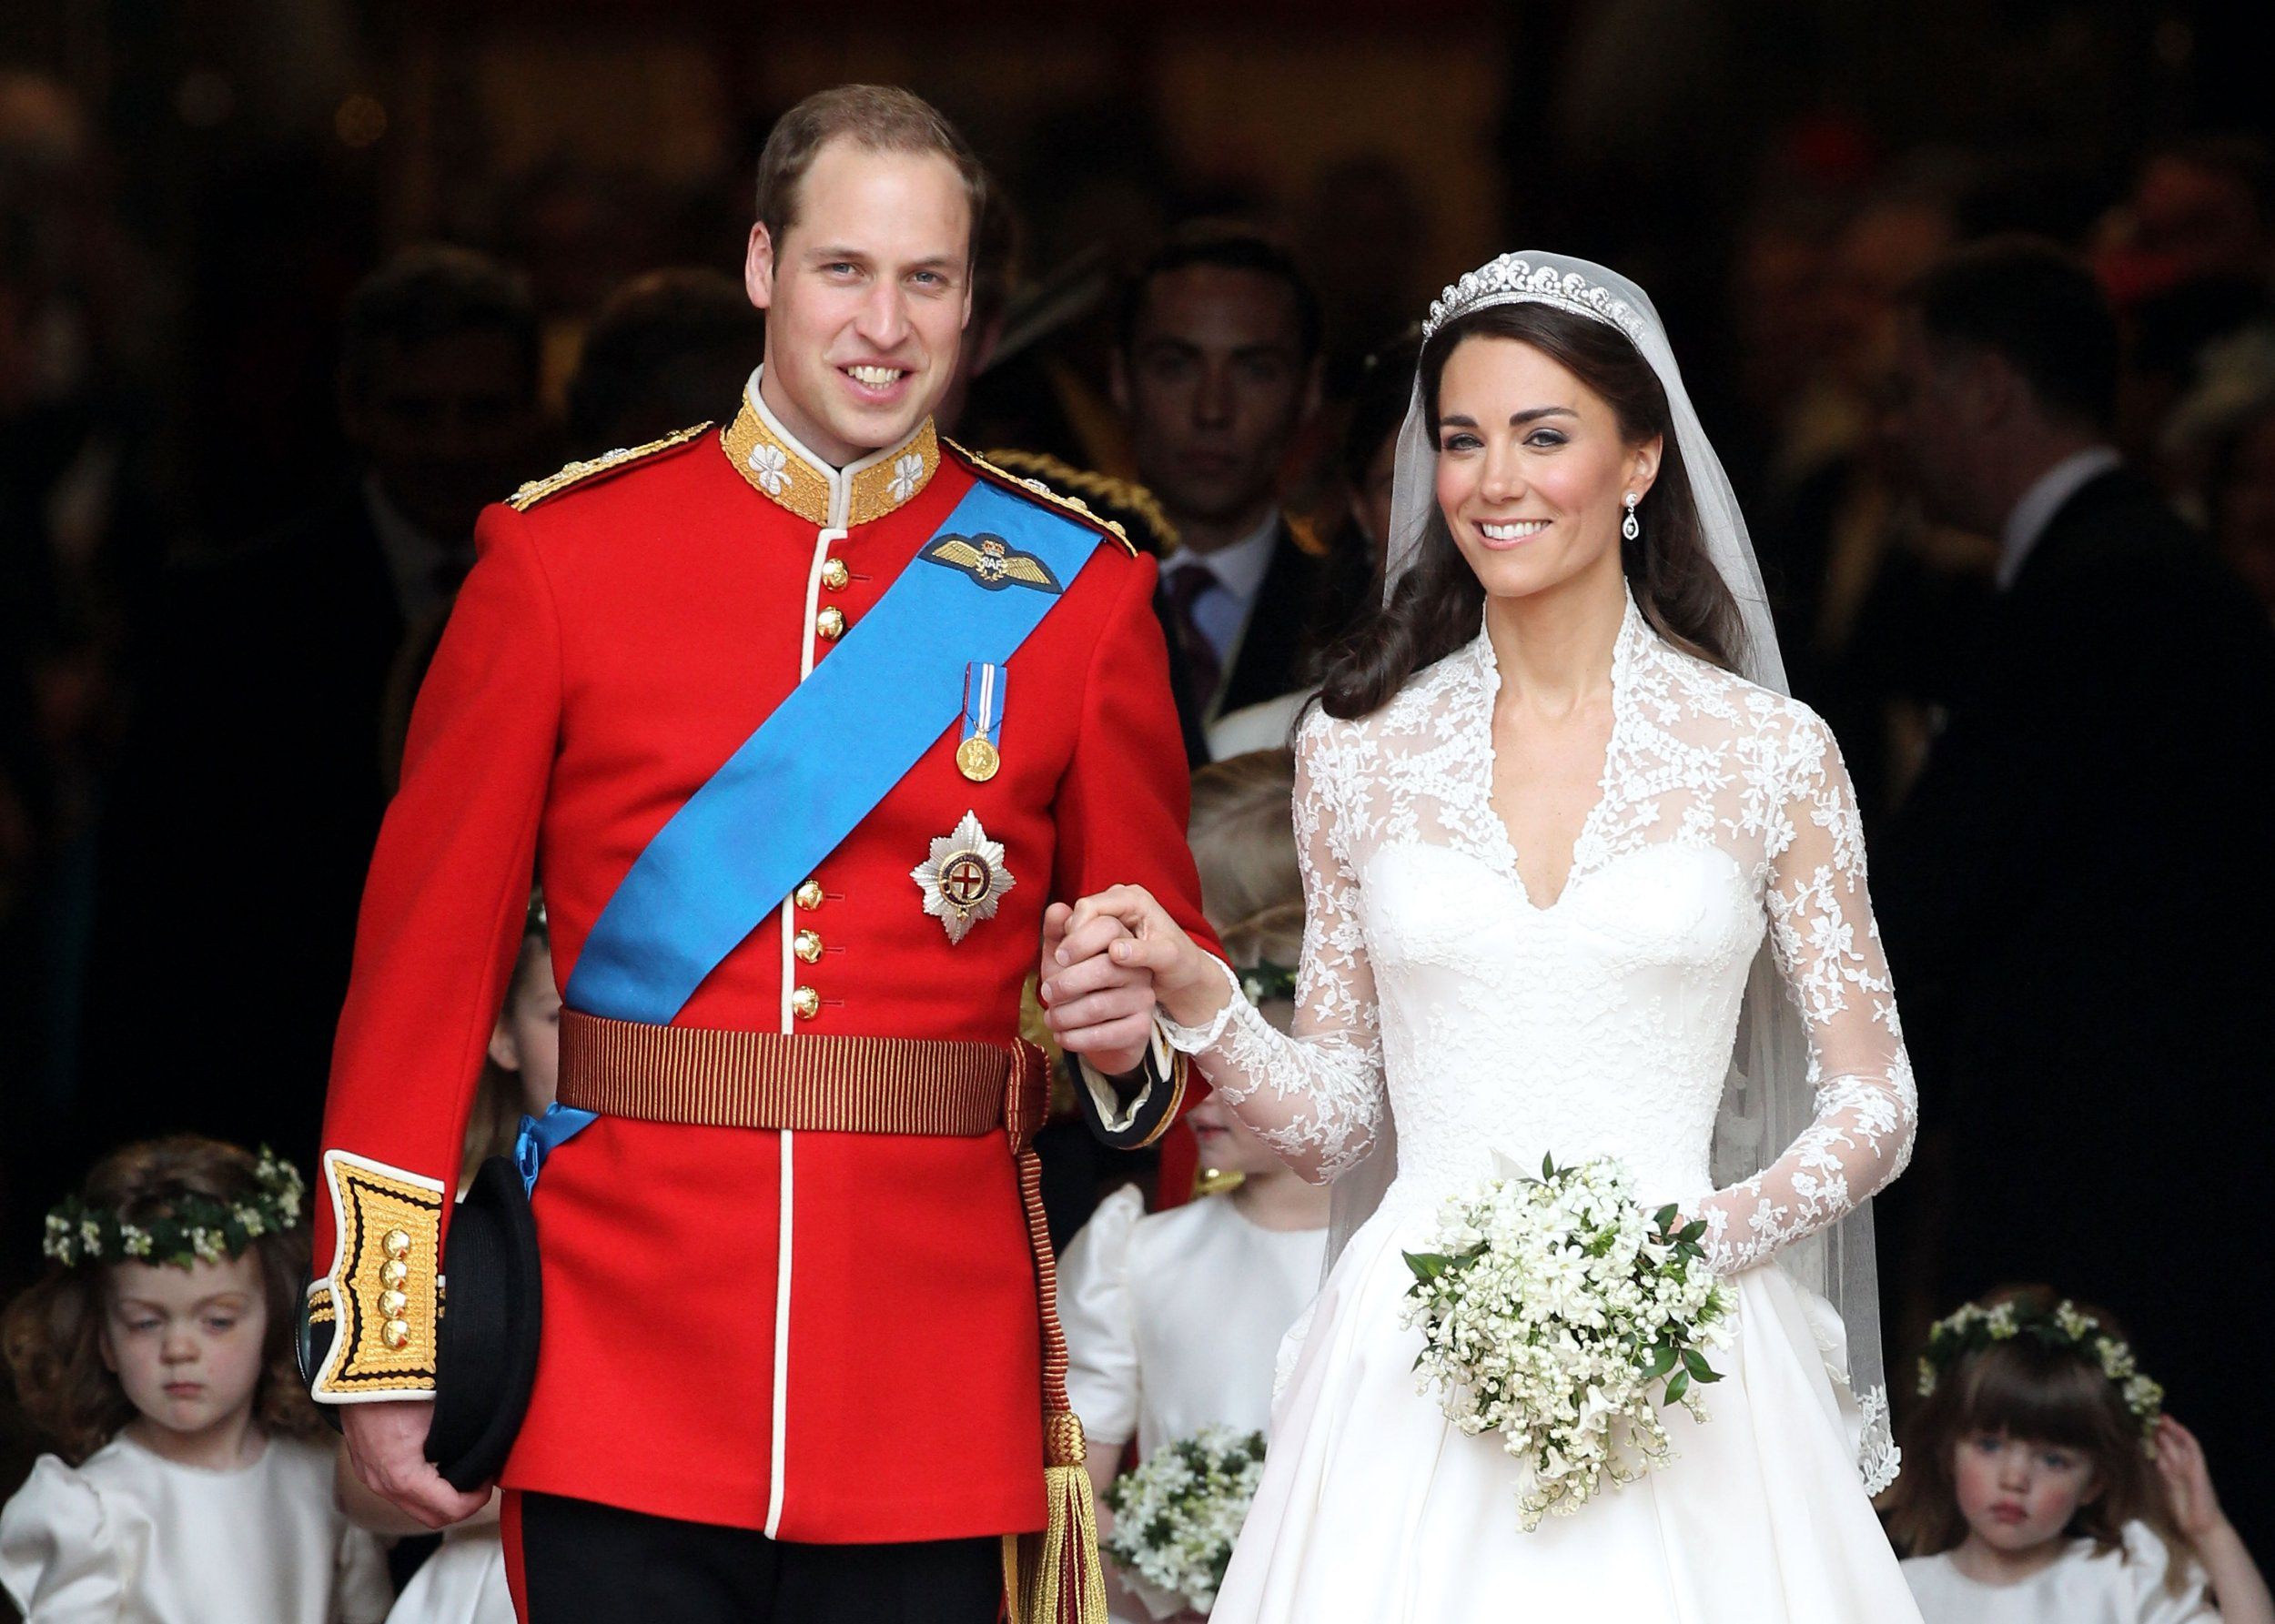 Why don't Prince William, Prince Charles and Prince Philip wear wedding rings as Harry snubs tradition?